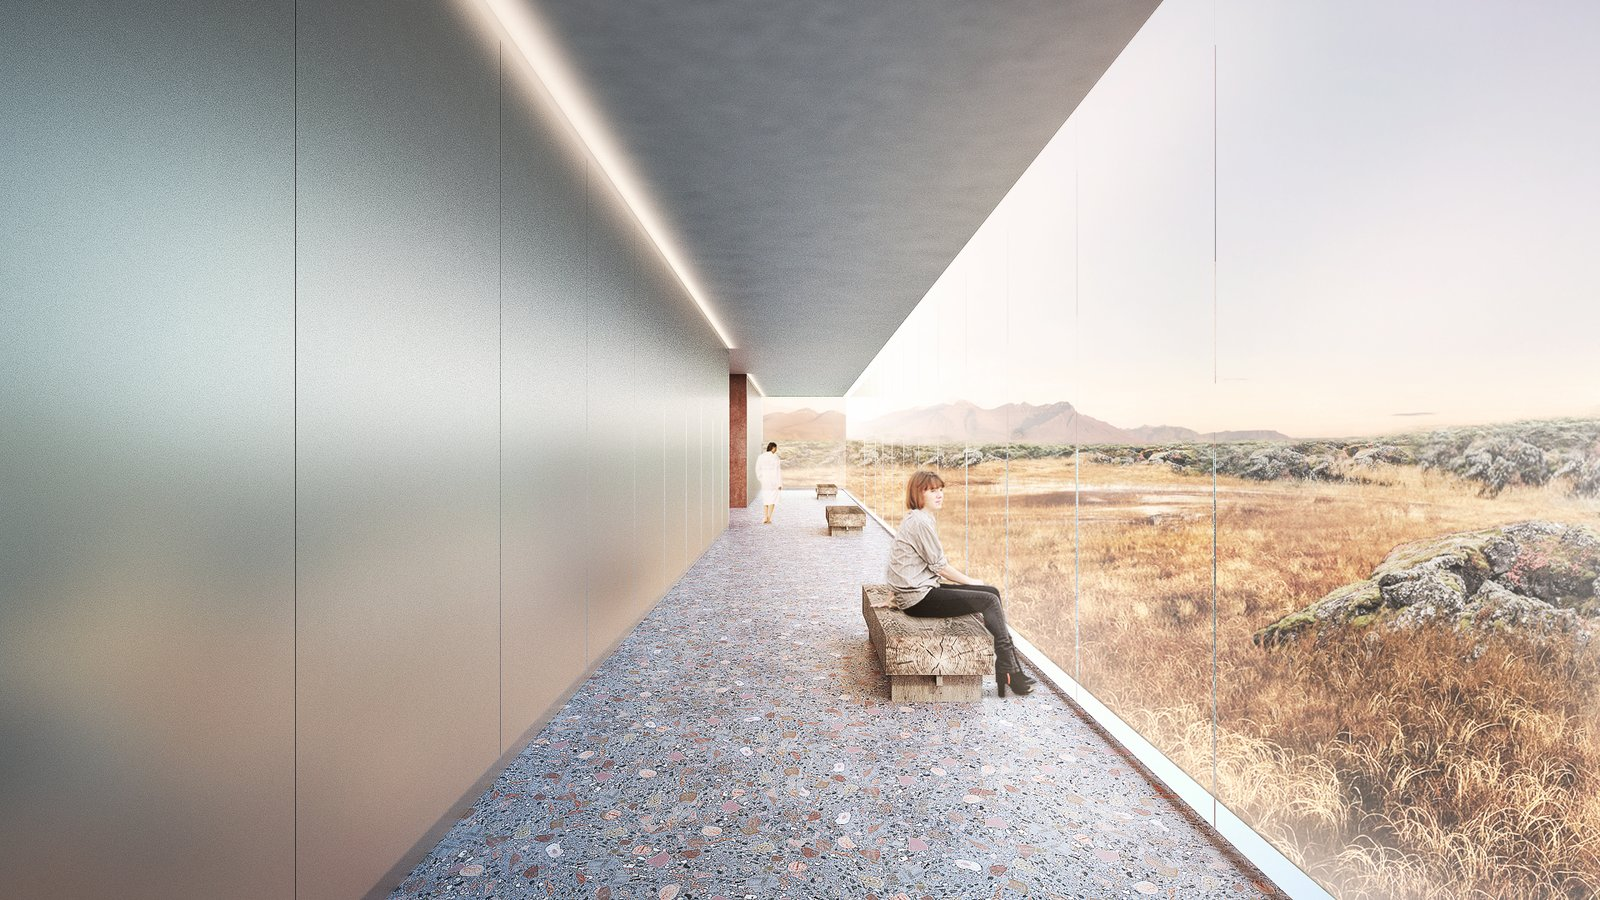 Hallway walkway  Photo 8 of 18 in A Proposed Icelandic Resort Celebrates Wellness and its Magical Surroundings